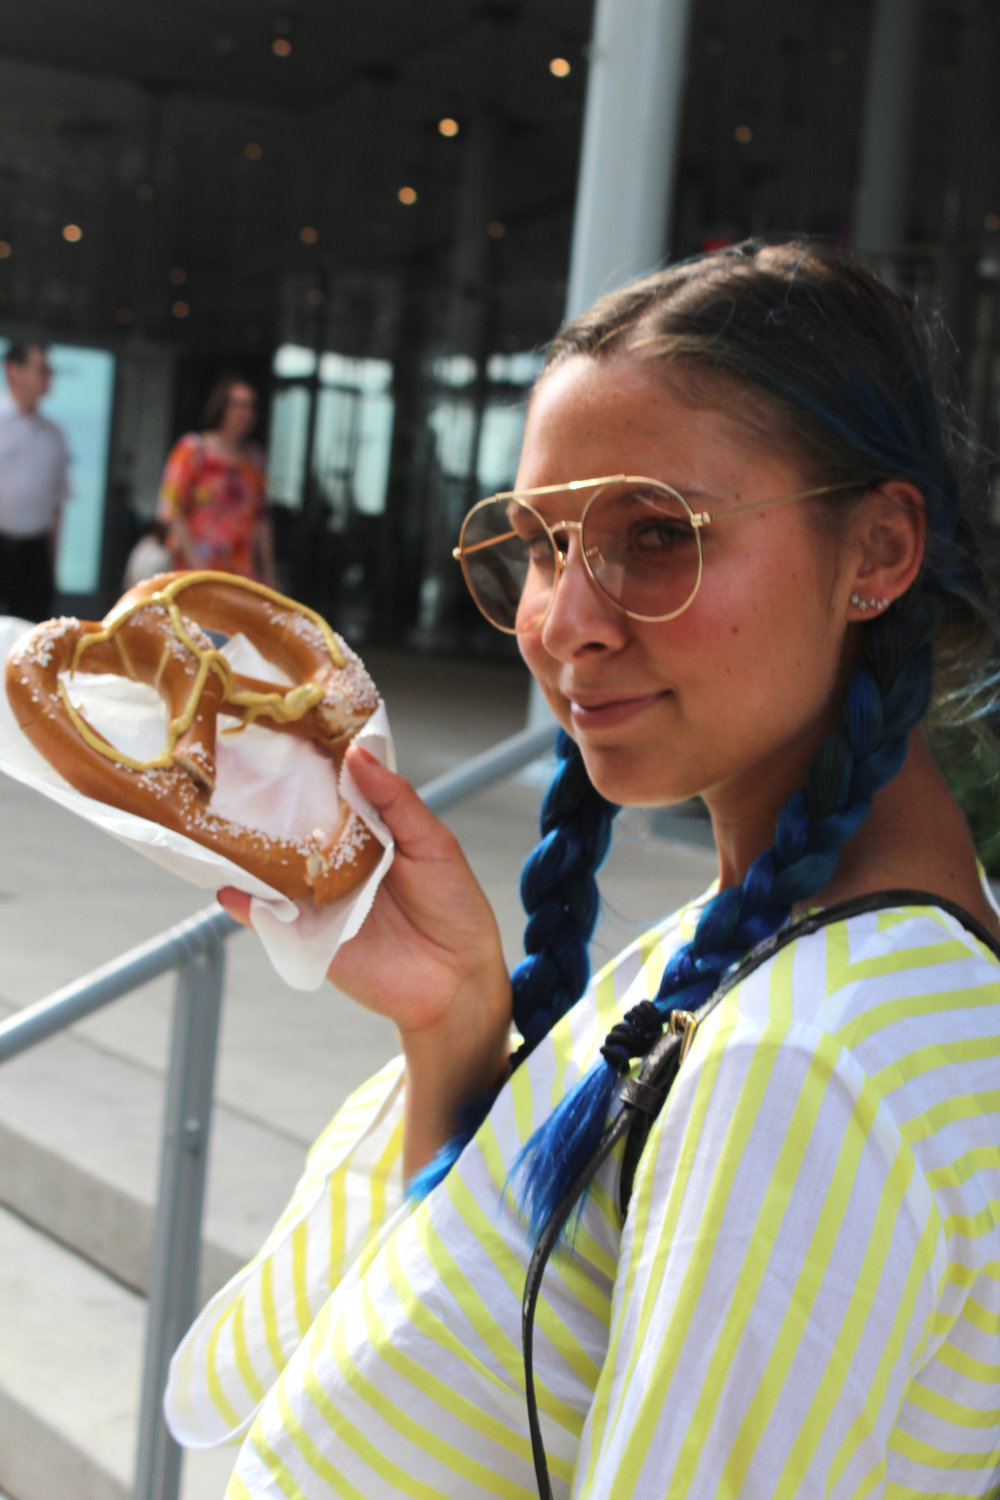 P.S. - So, I always look forward to grabbing a pretzel from a street vendor in NYC because well, they're bomb. BUT this pretzel was seriously SO awful and stiff and I was just very sad. Thought I'd let you know. It was $5. Still mad about it!!